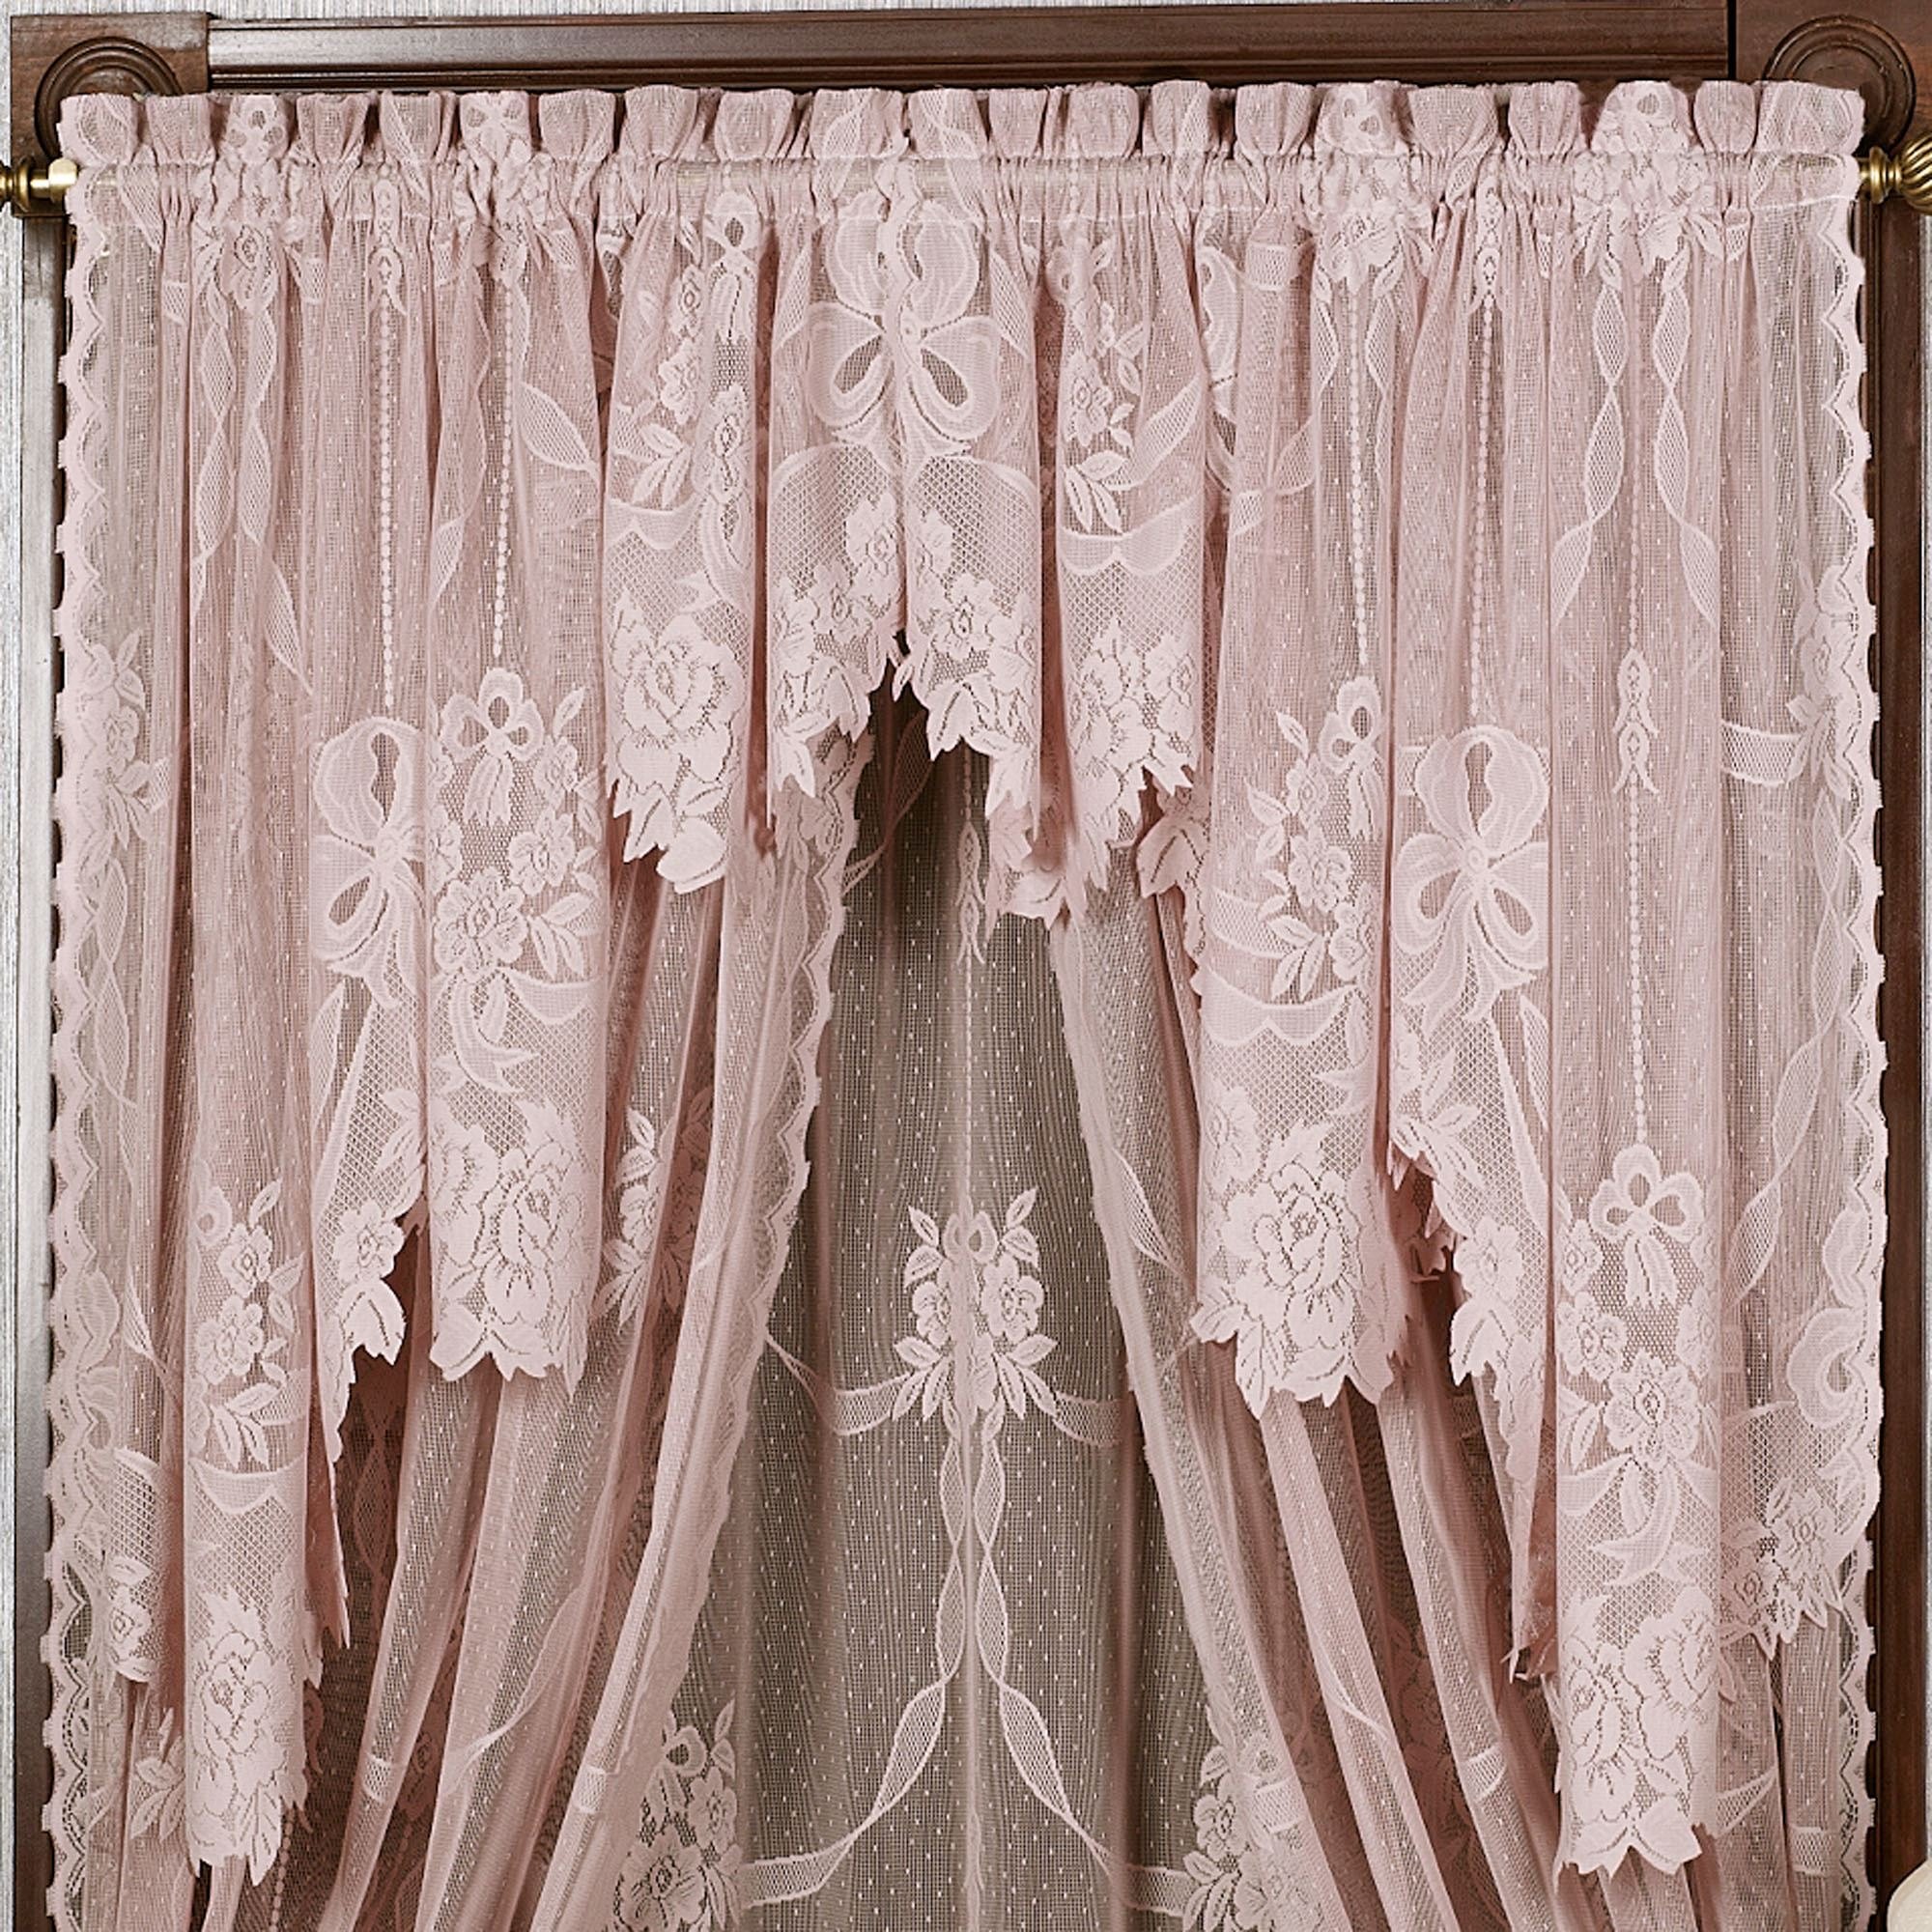 rose bedbathhome com hervicrosewin valance for victorian curtains heritage by lace windows valances